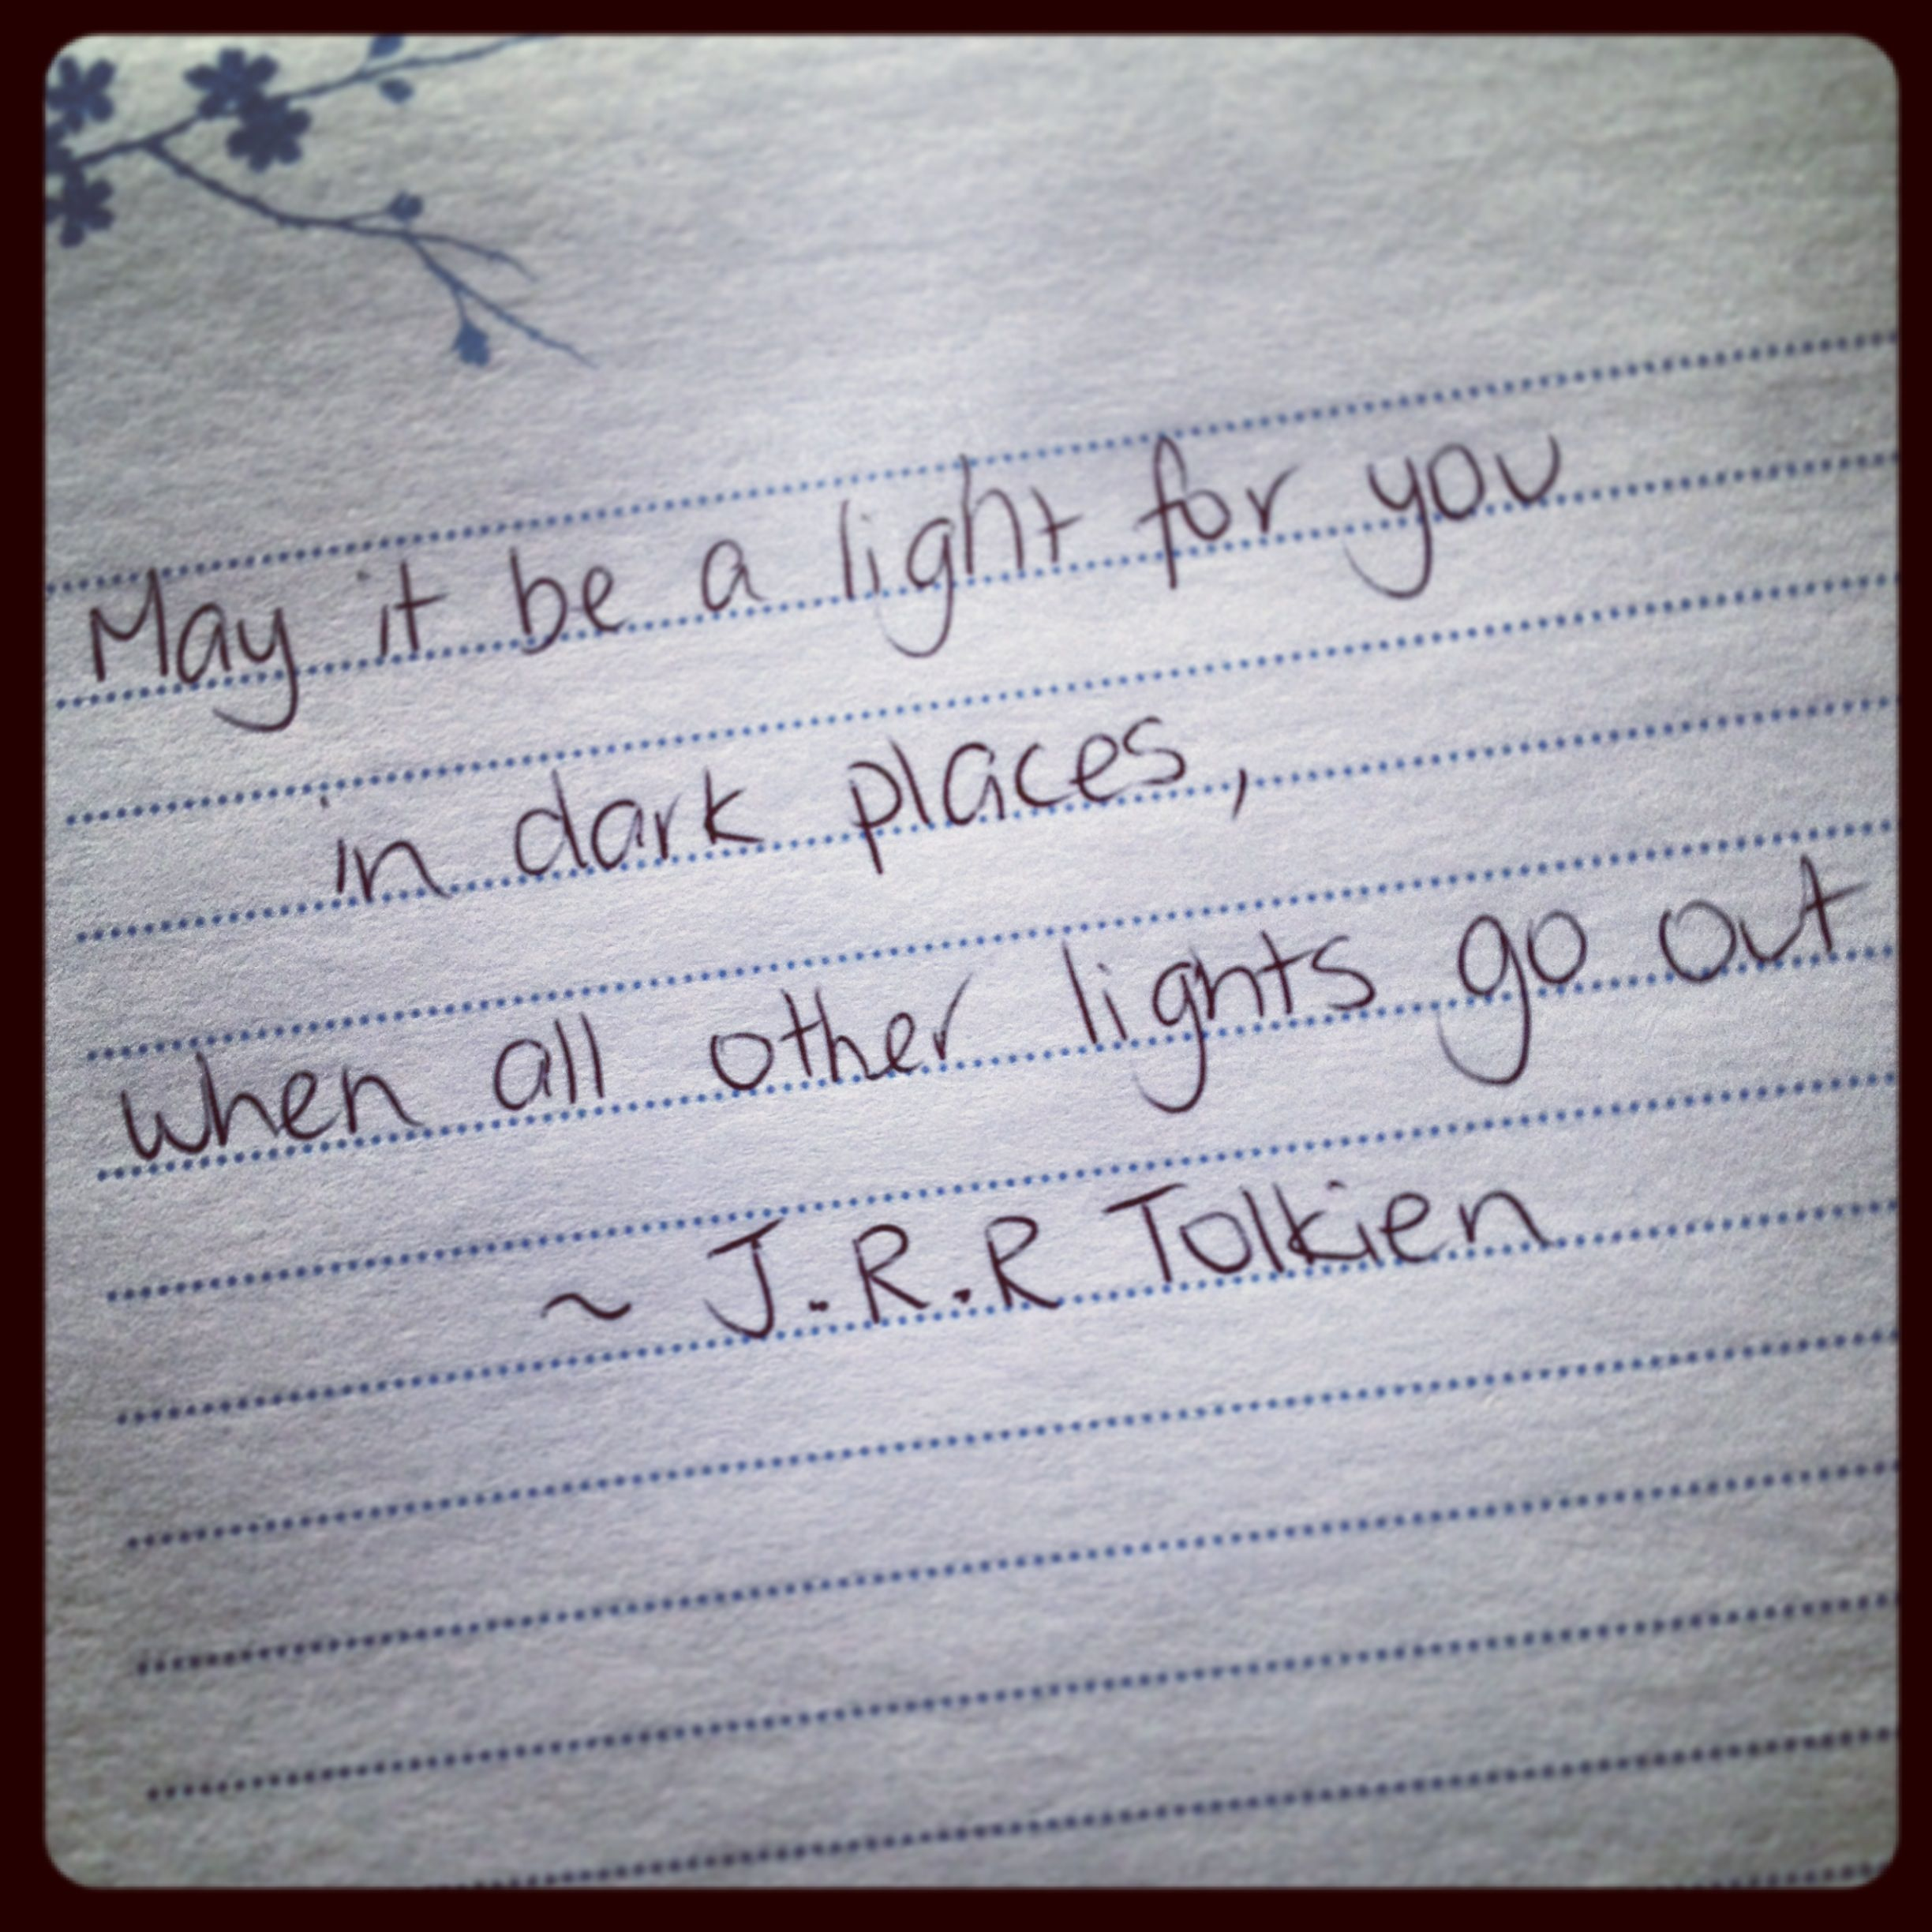 Superbe Galadriel Quote To Frodo From Lord Of The Rings By J.R.R Tolkien